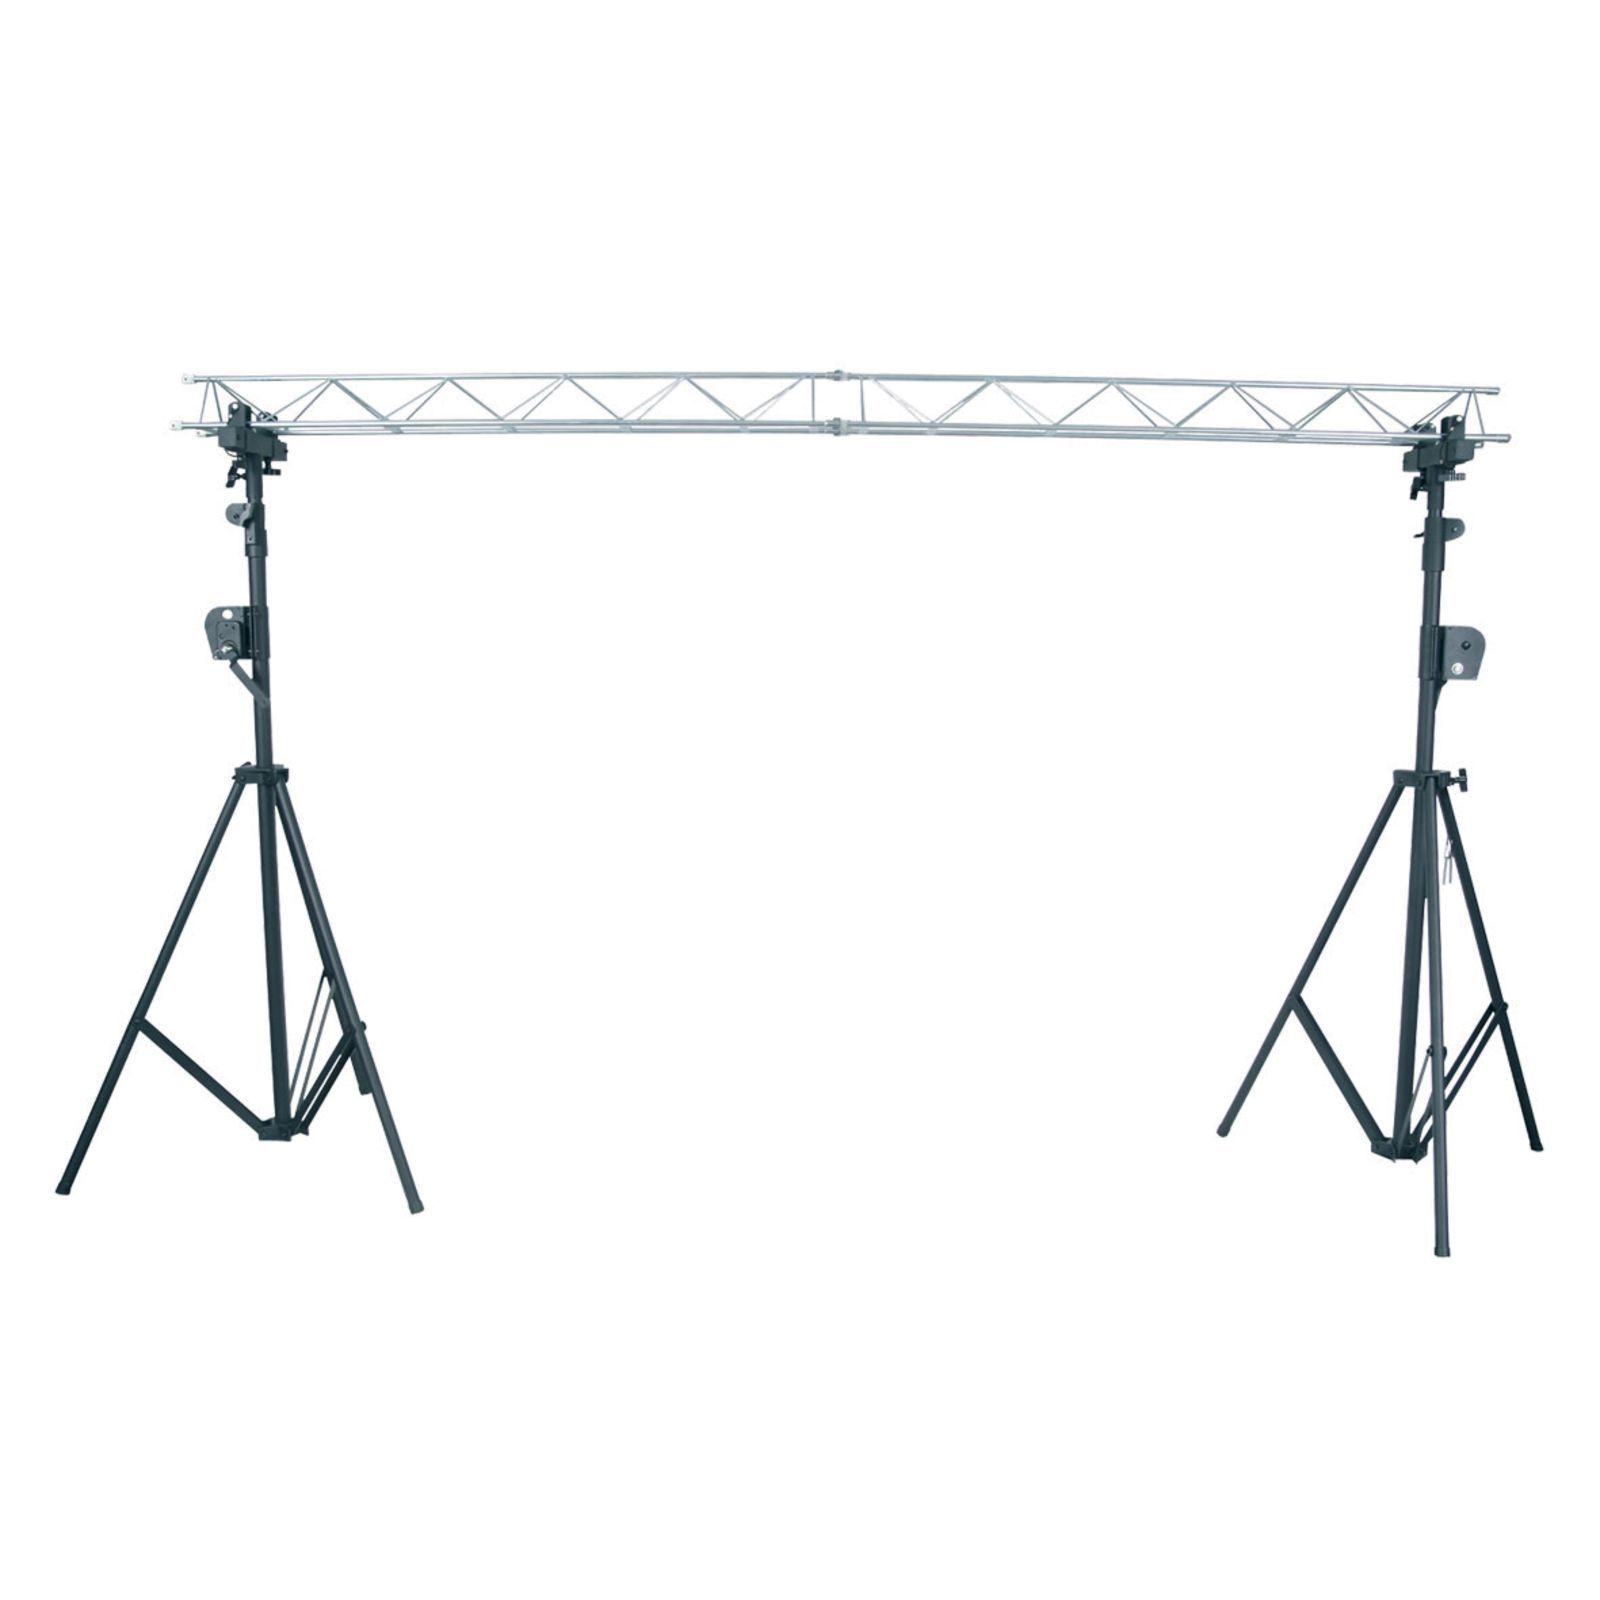 American DJ Light Bridge One / Dura Truss Traversensystem, max. 100 kg Produktbillede